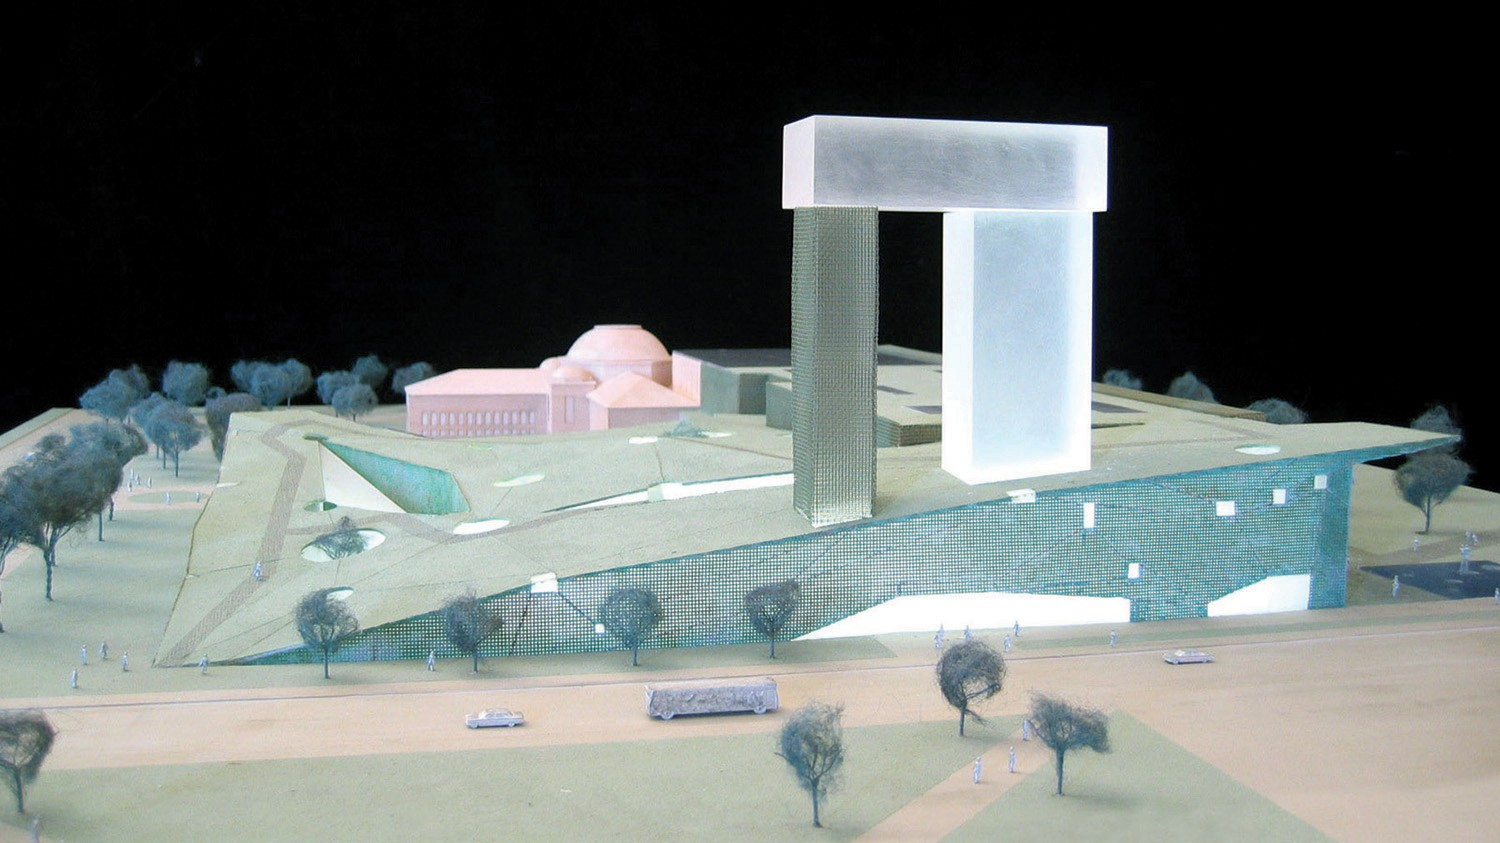 https://stevenholl.sfo2.digitaloceanspaces.com/uploads/projects/project-images/StevenHollArchitects_LANH_model3_WH.jpg